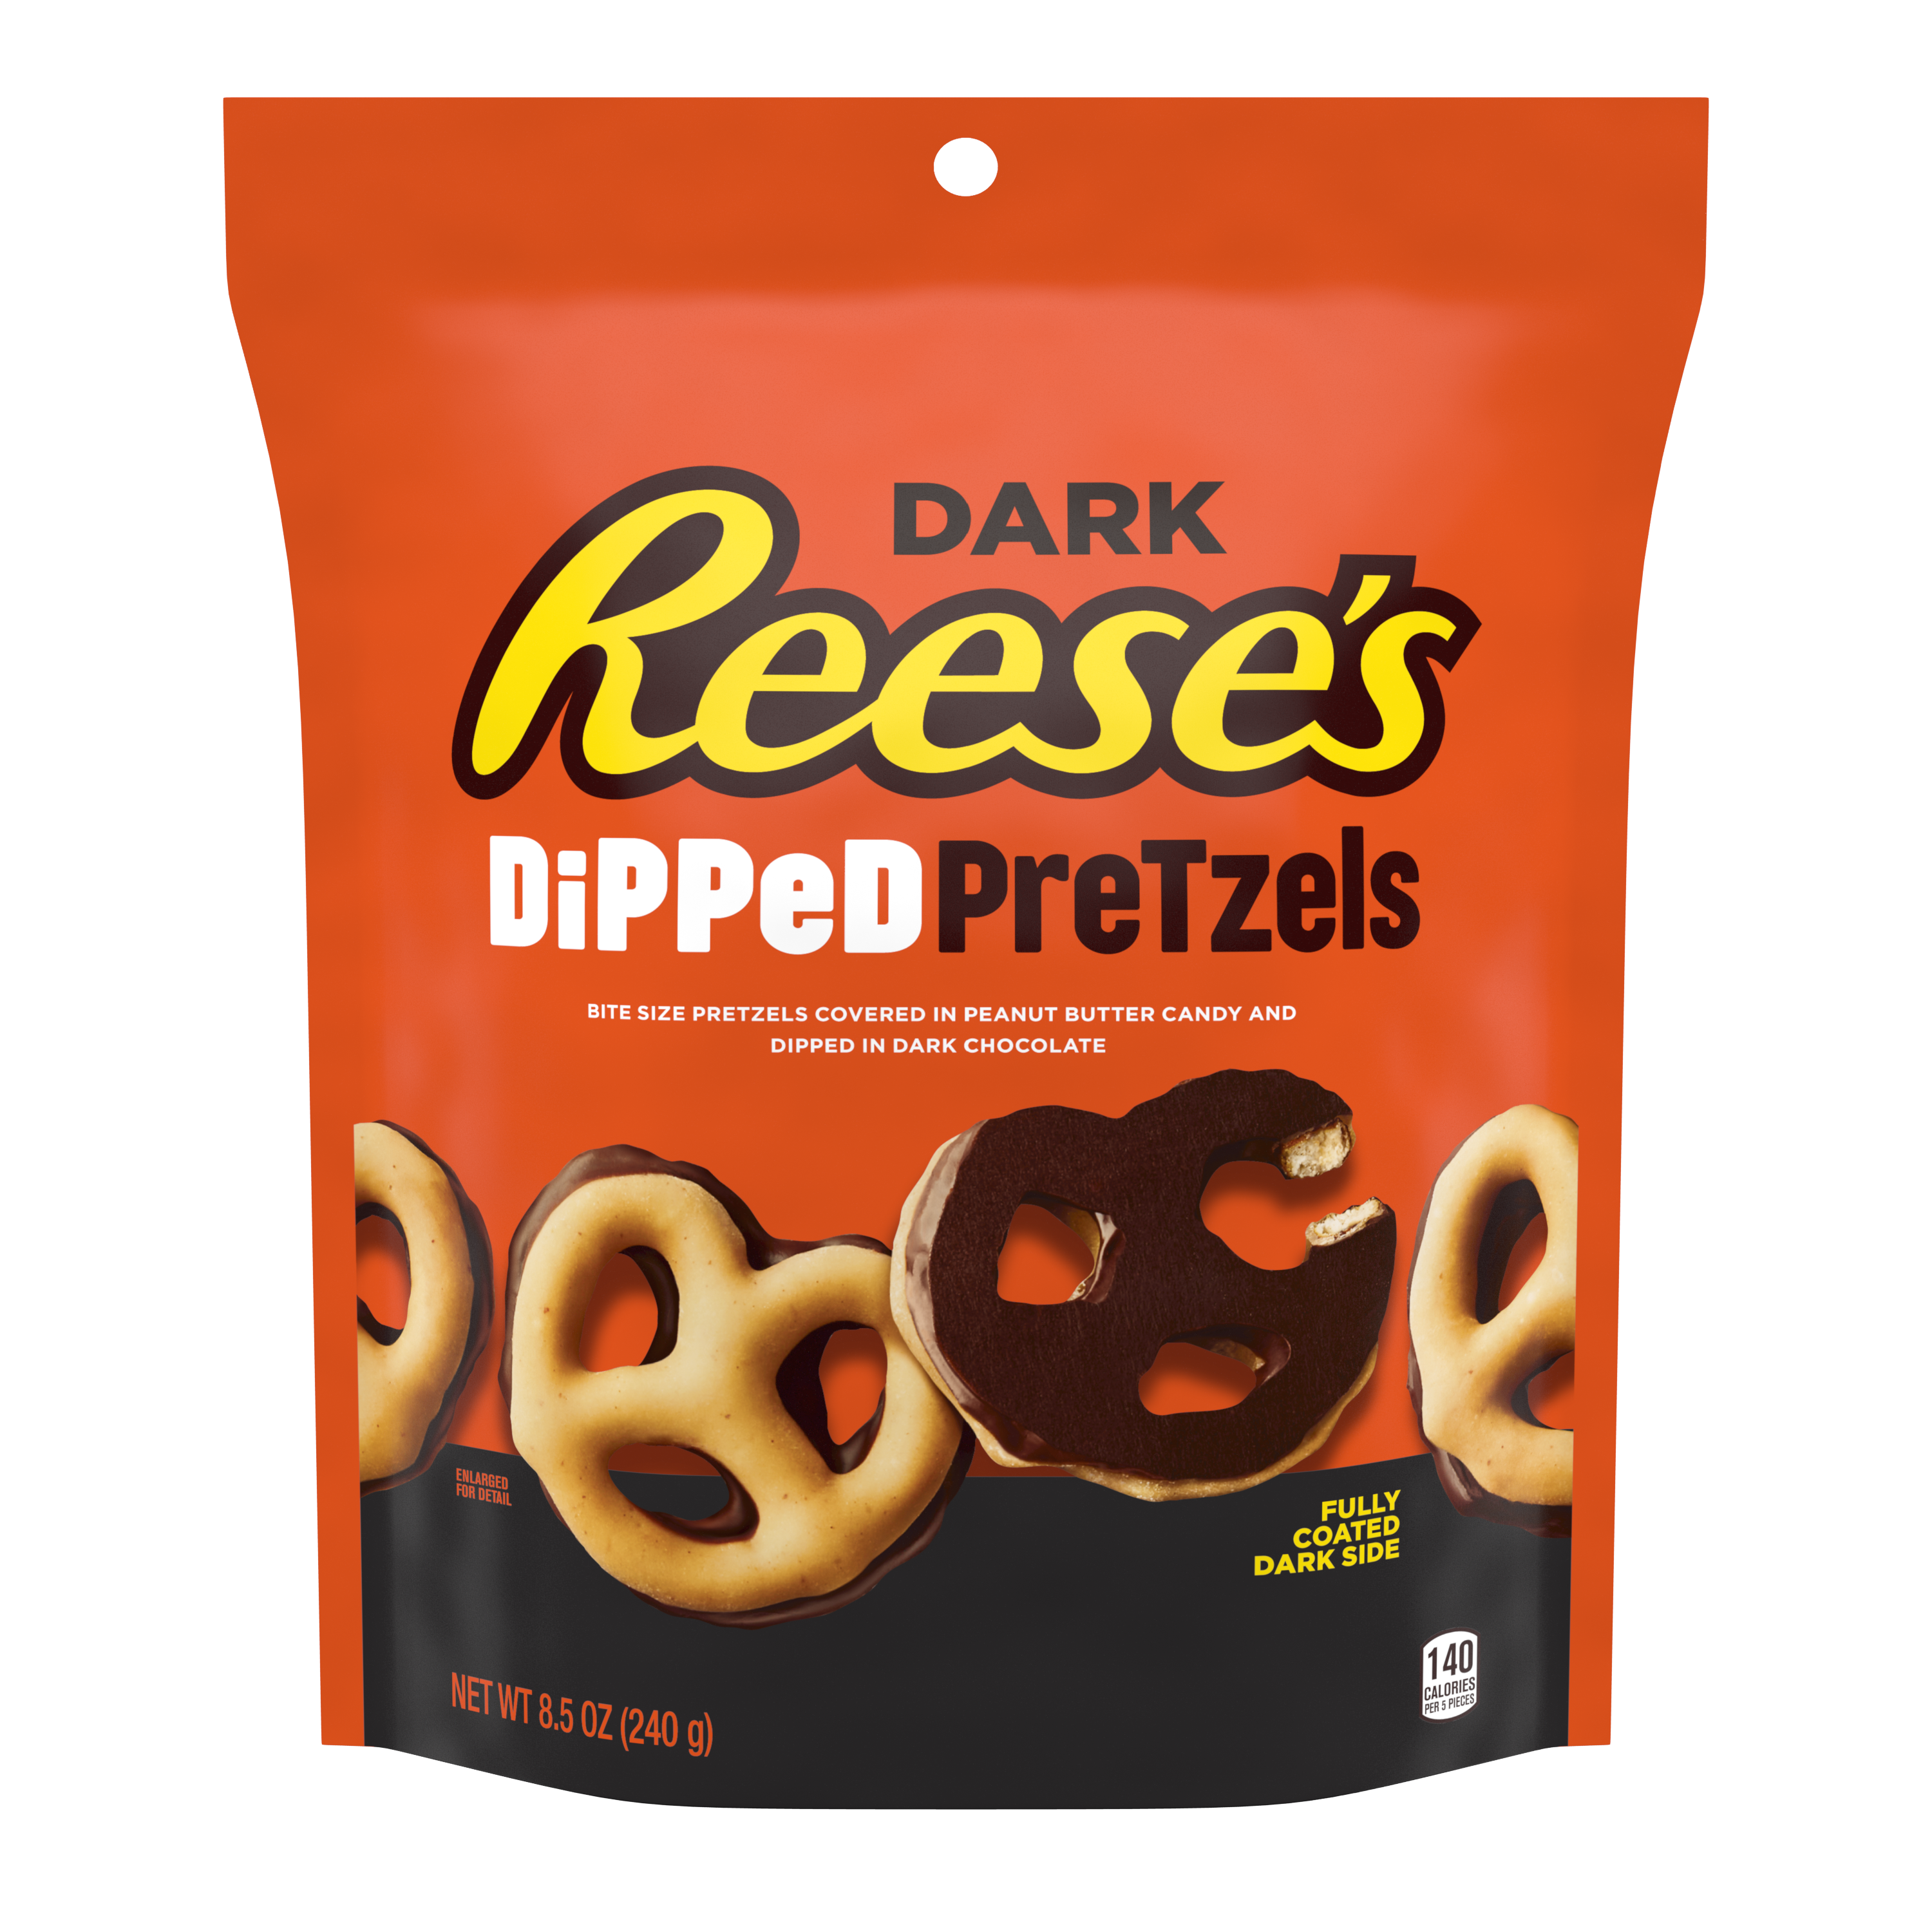 REESE'S Dipped Pretzels Dark Chocolate Snack, 8.5 oz bag - Front of Package